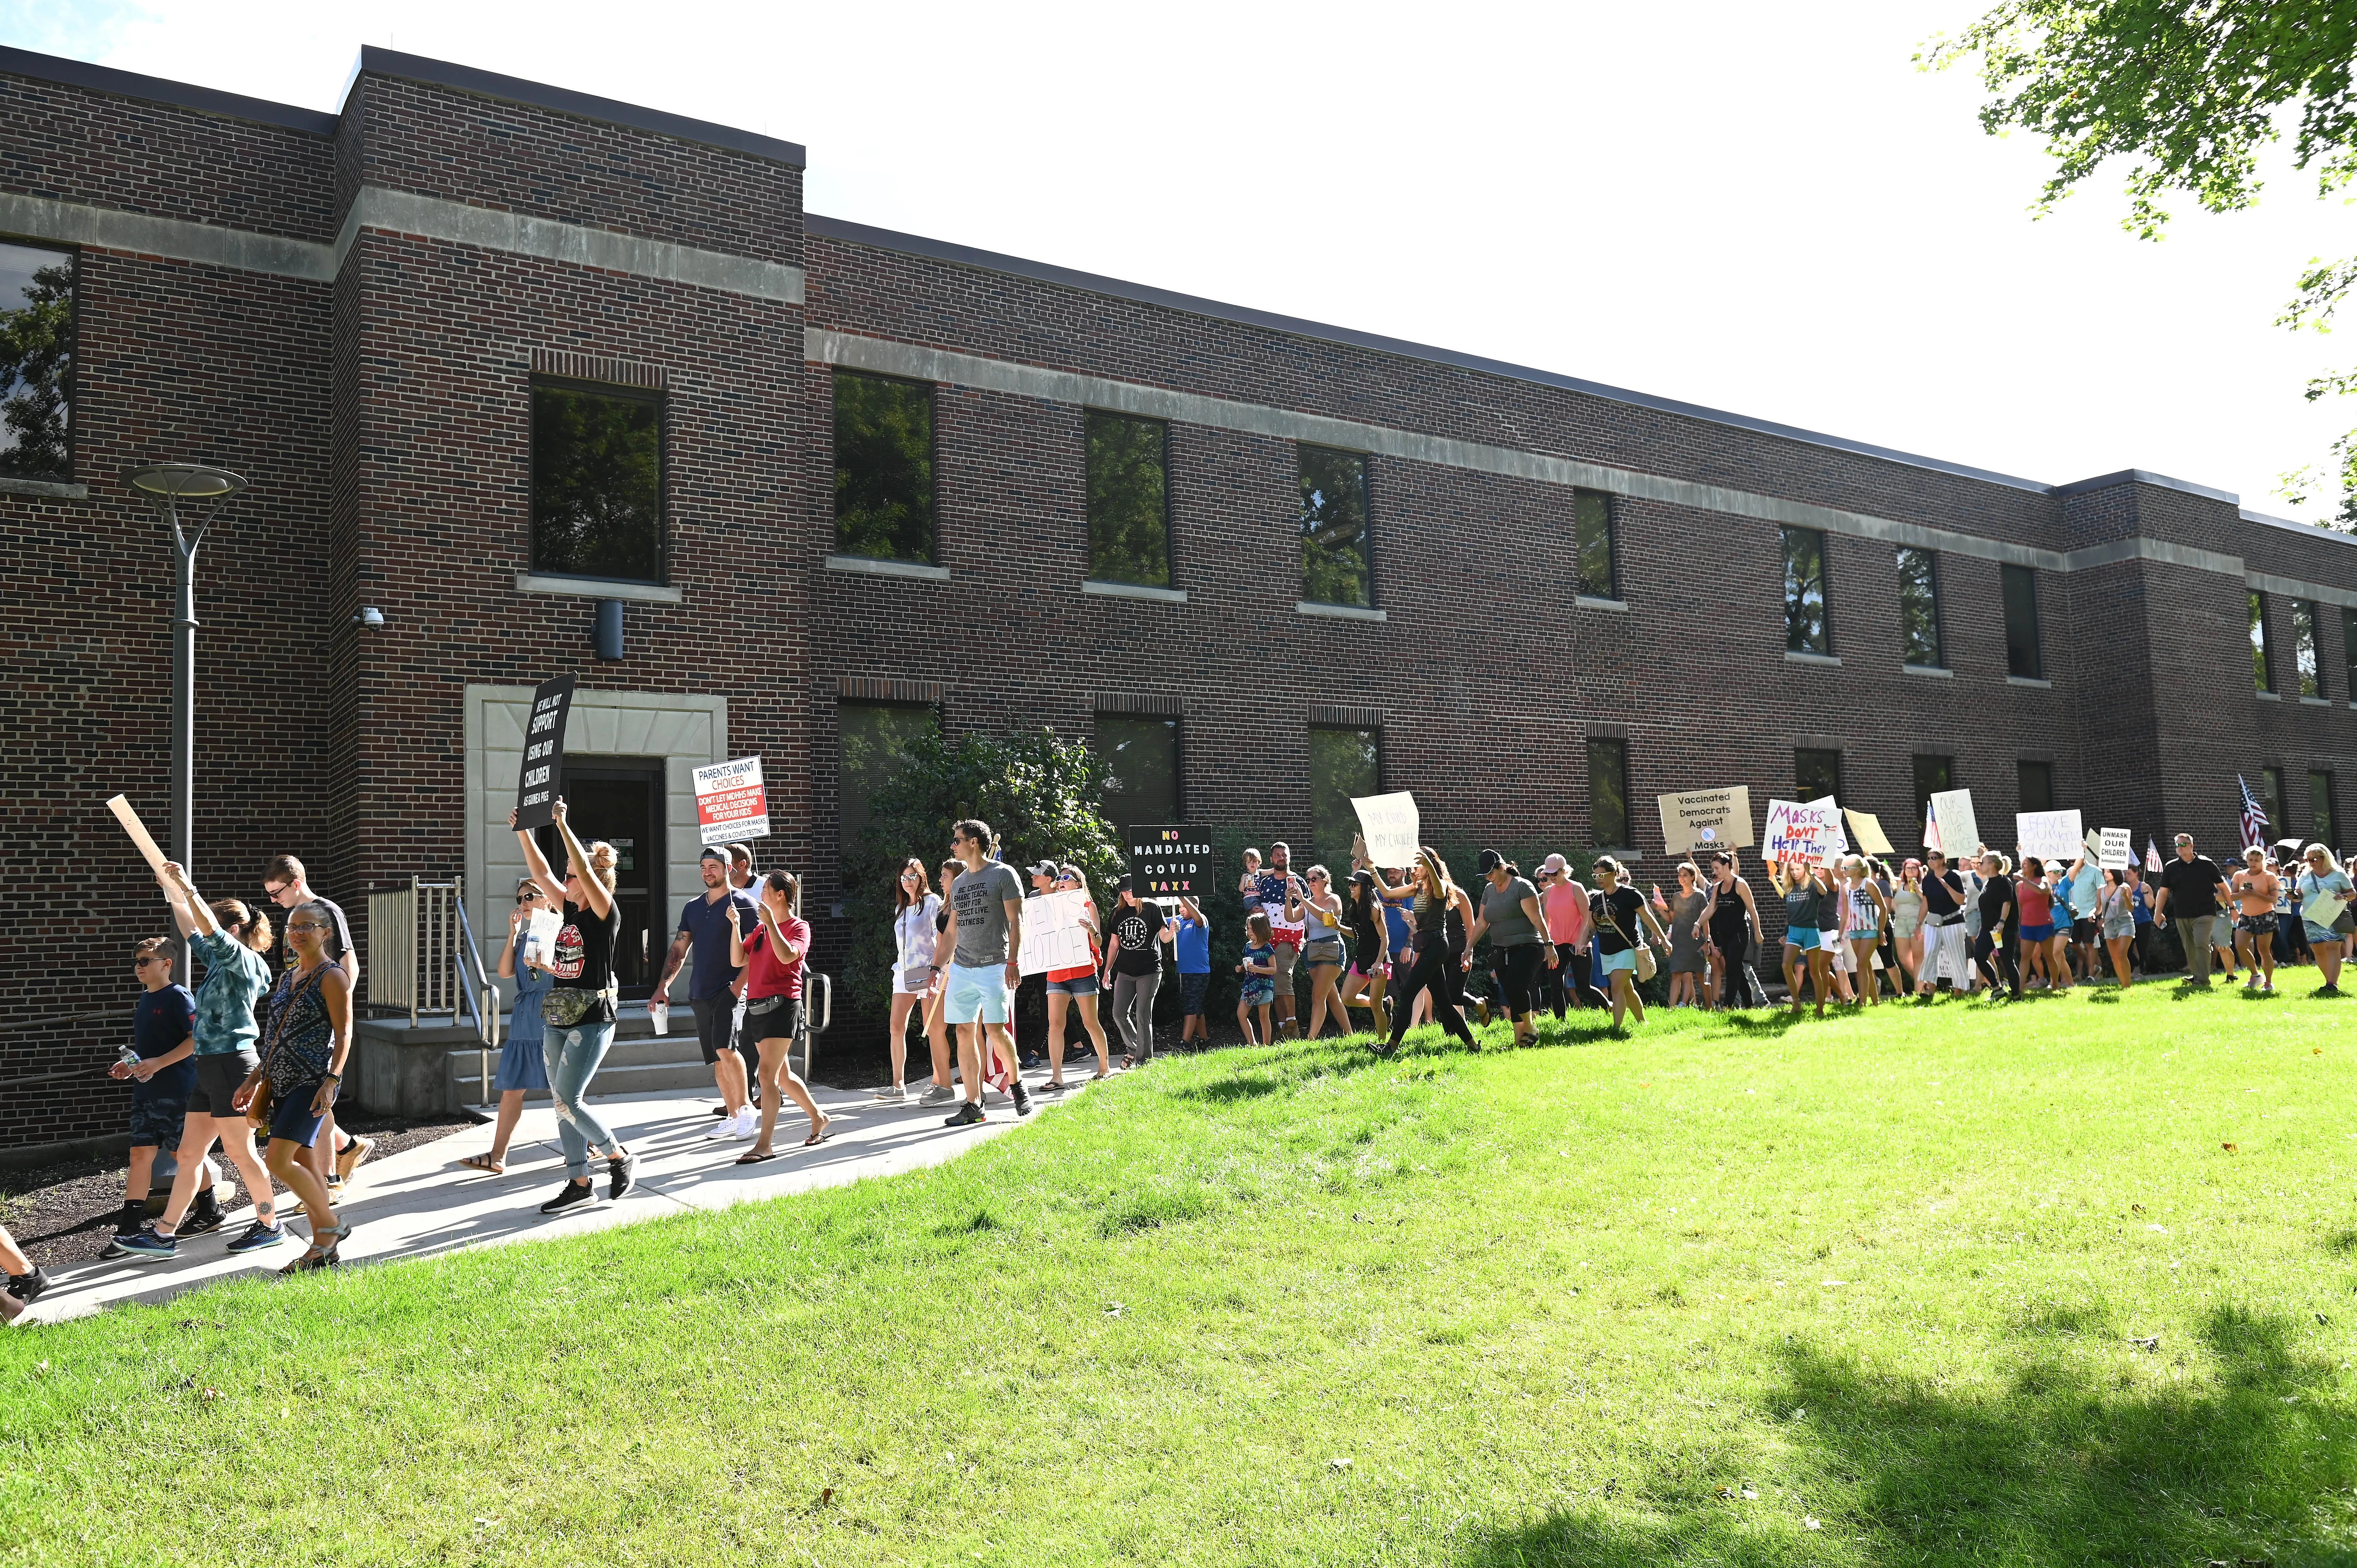 Protesters march around the Oakland County Health Division at a protest in Pontiac on Wednesday, Aug. 25, 2021.